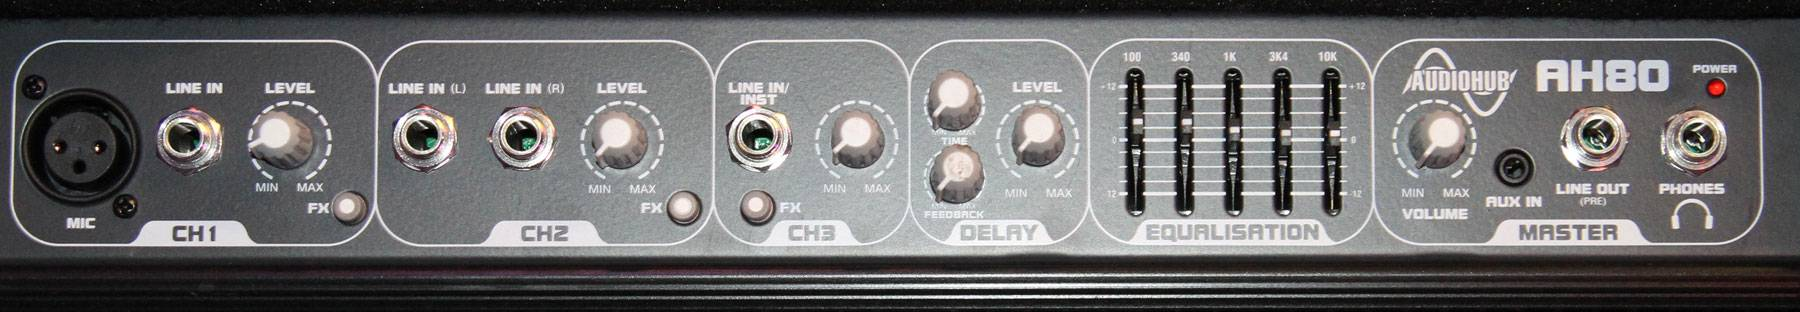 Laney AH80 3 Channel 80W Multi Instrument Amplifier Product Image 4